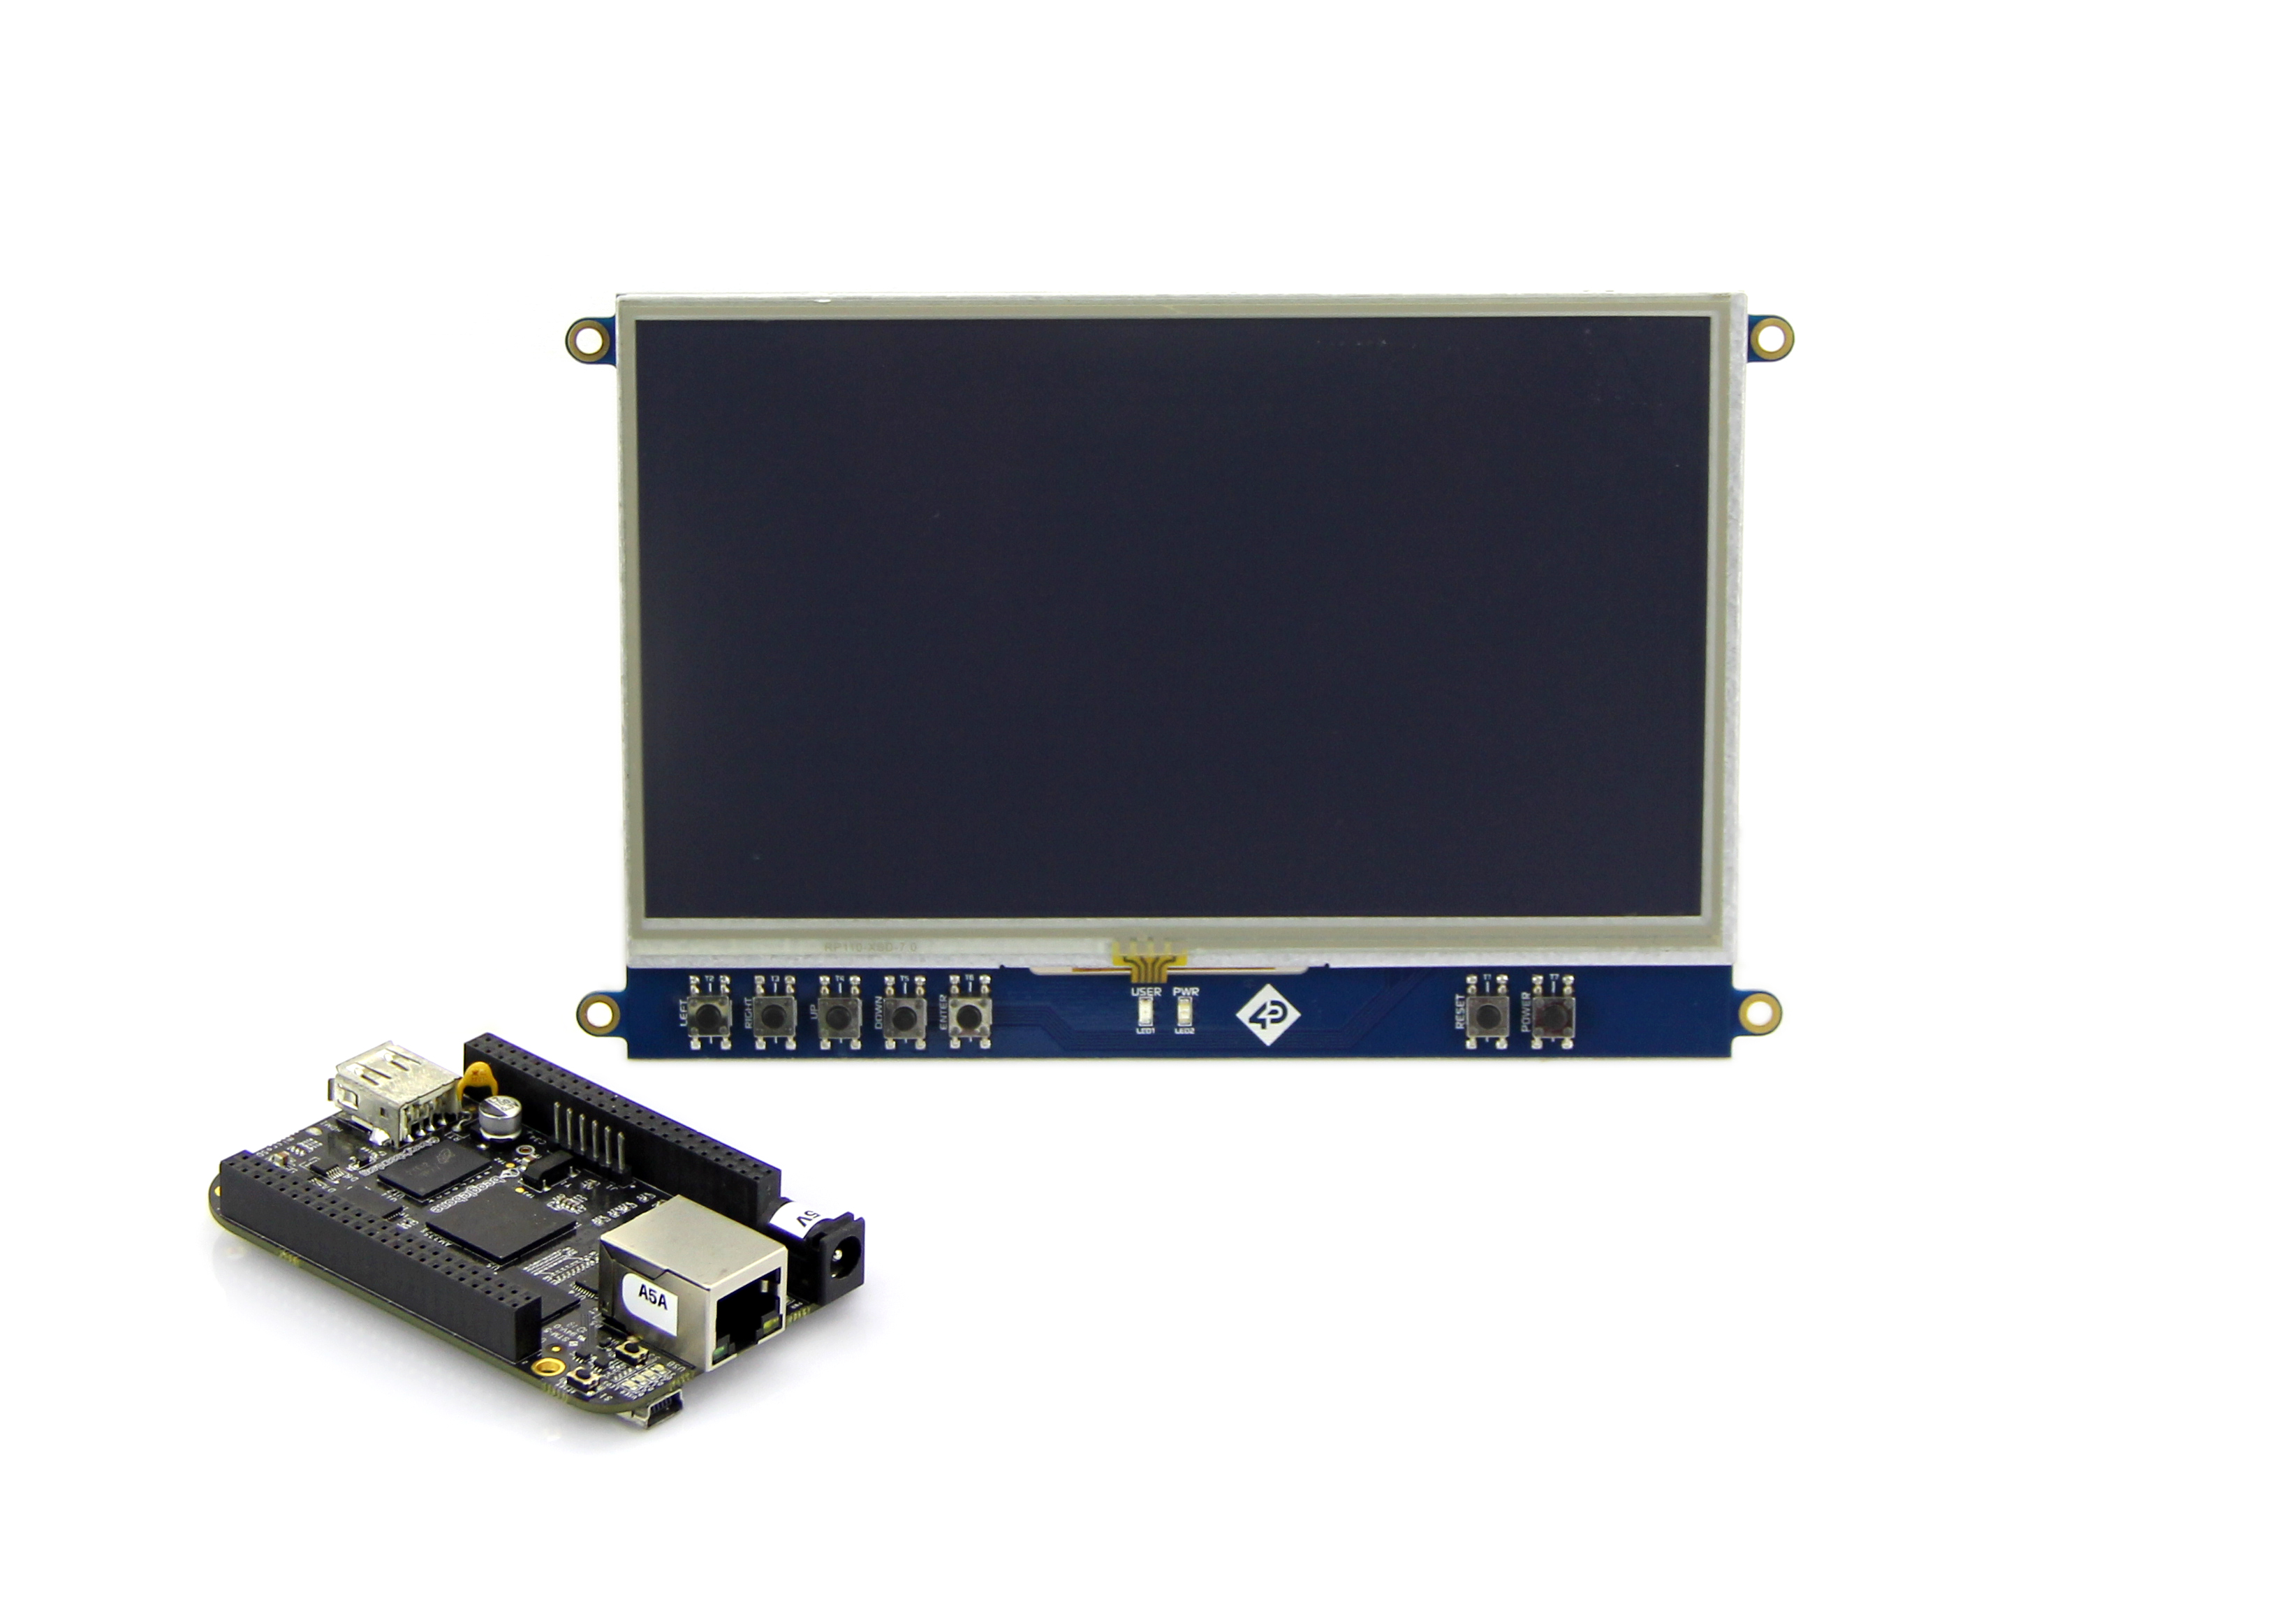 7 Inch LCD Cape for Beagle Bone Black - Touch Display